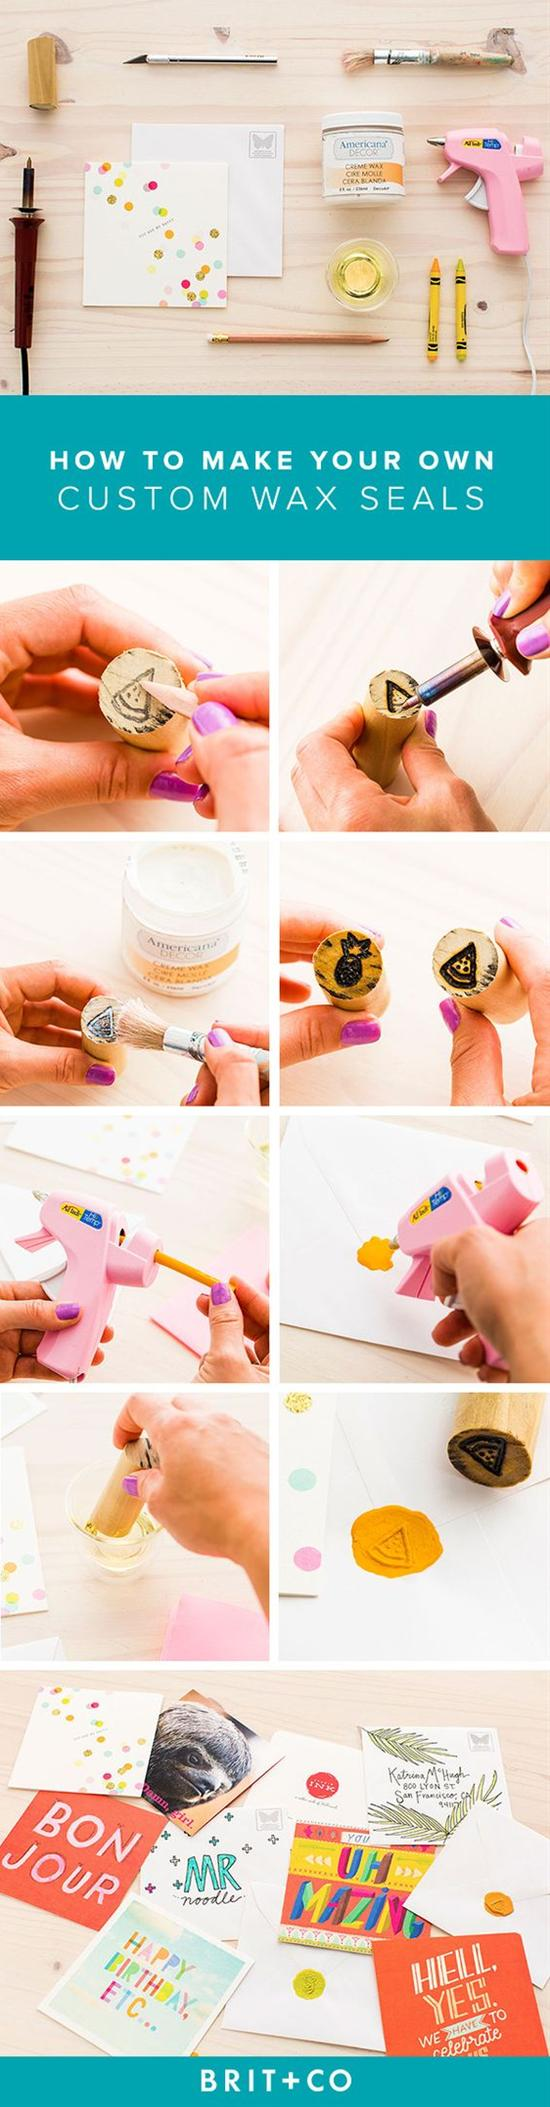 9 Cool Things You Can Do With a Hot Glue Gun